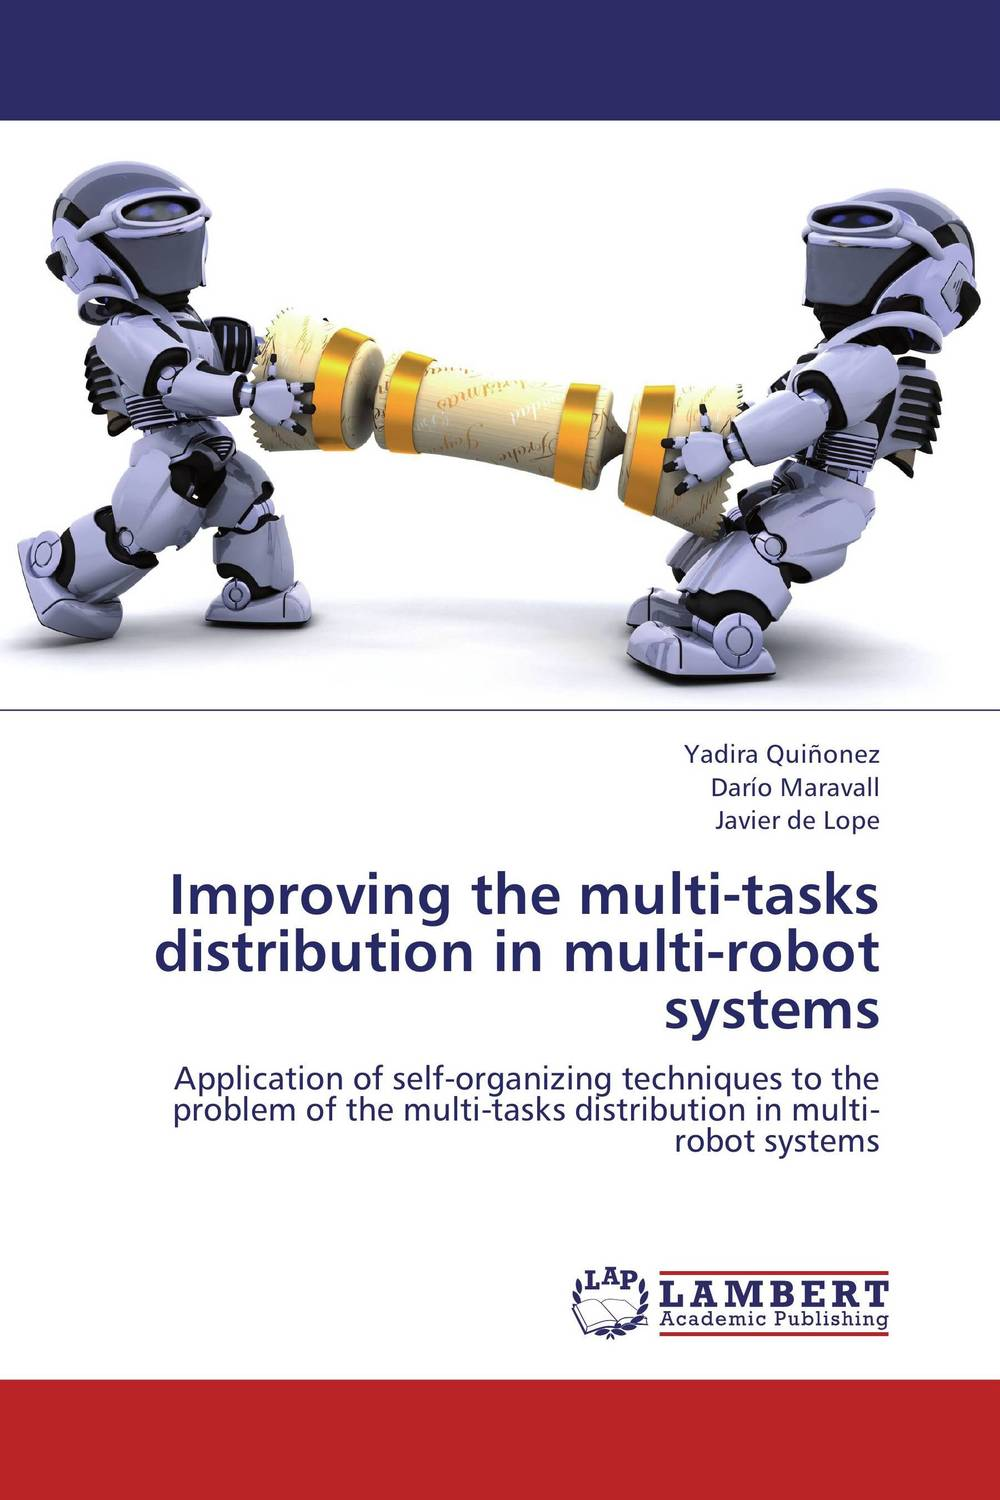 Improving the multi-tasks distribution in multi-robot systems robots in disguise 1 step changers